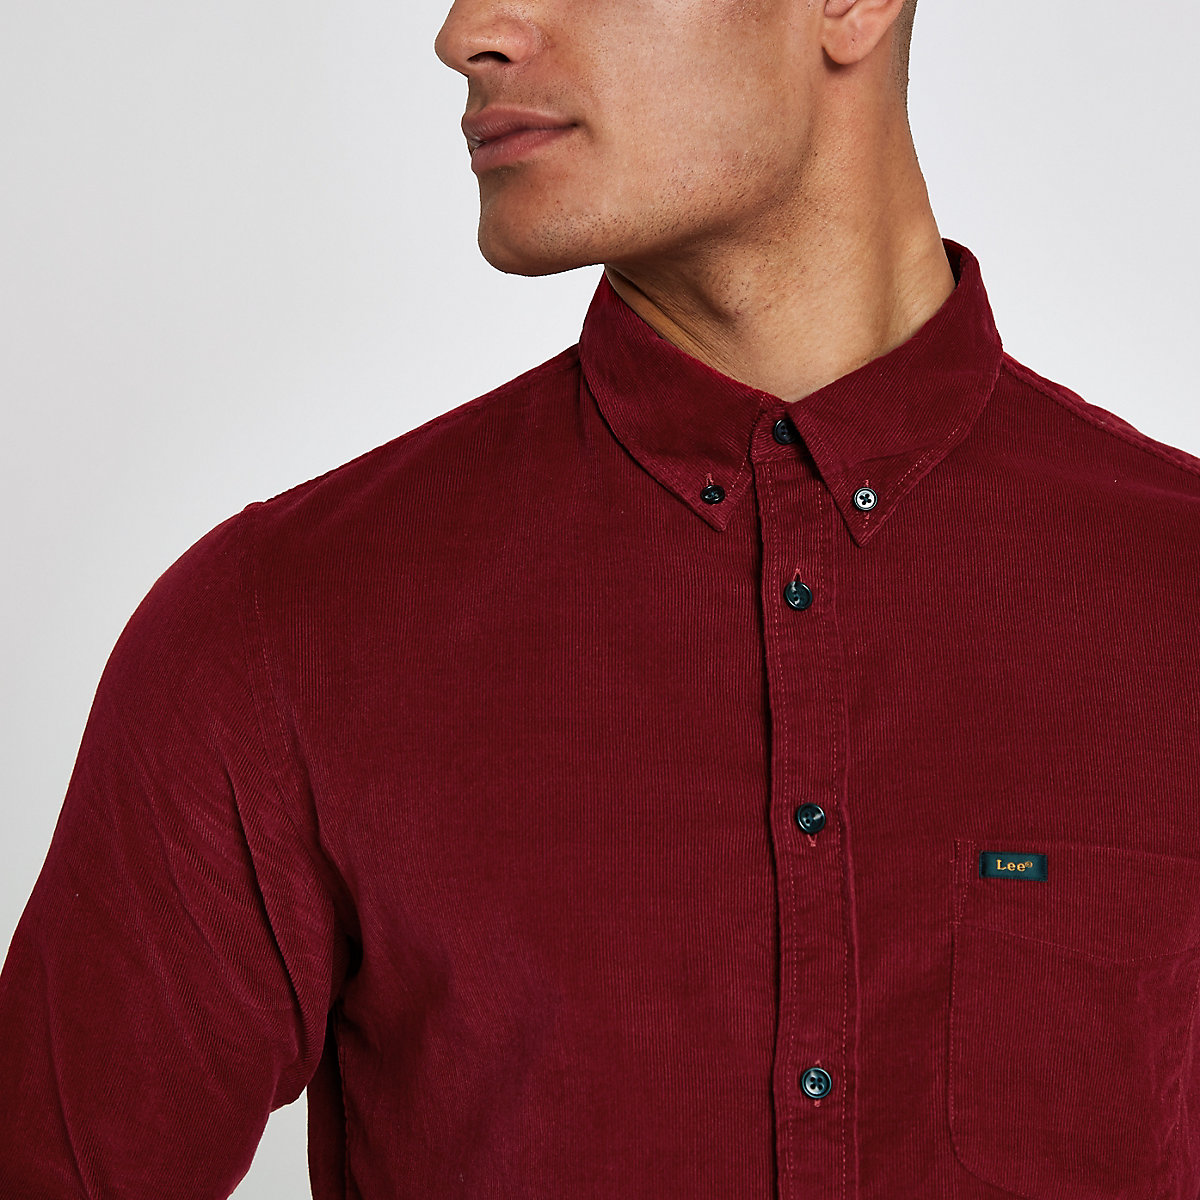 Lee red long sleeve cord shirt